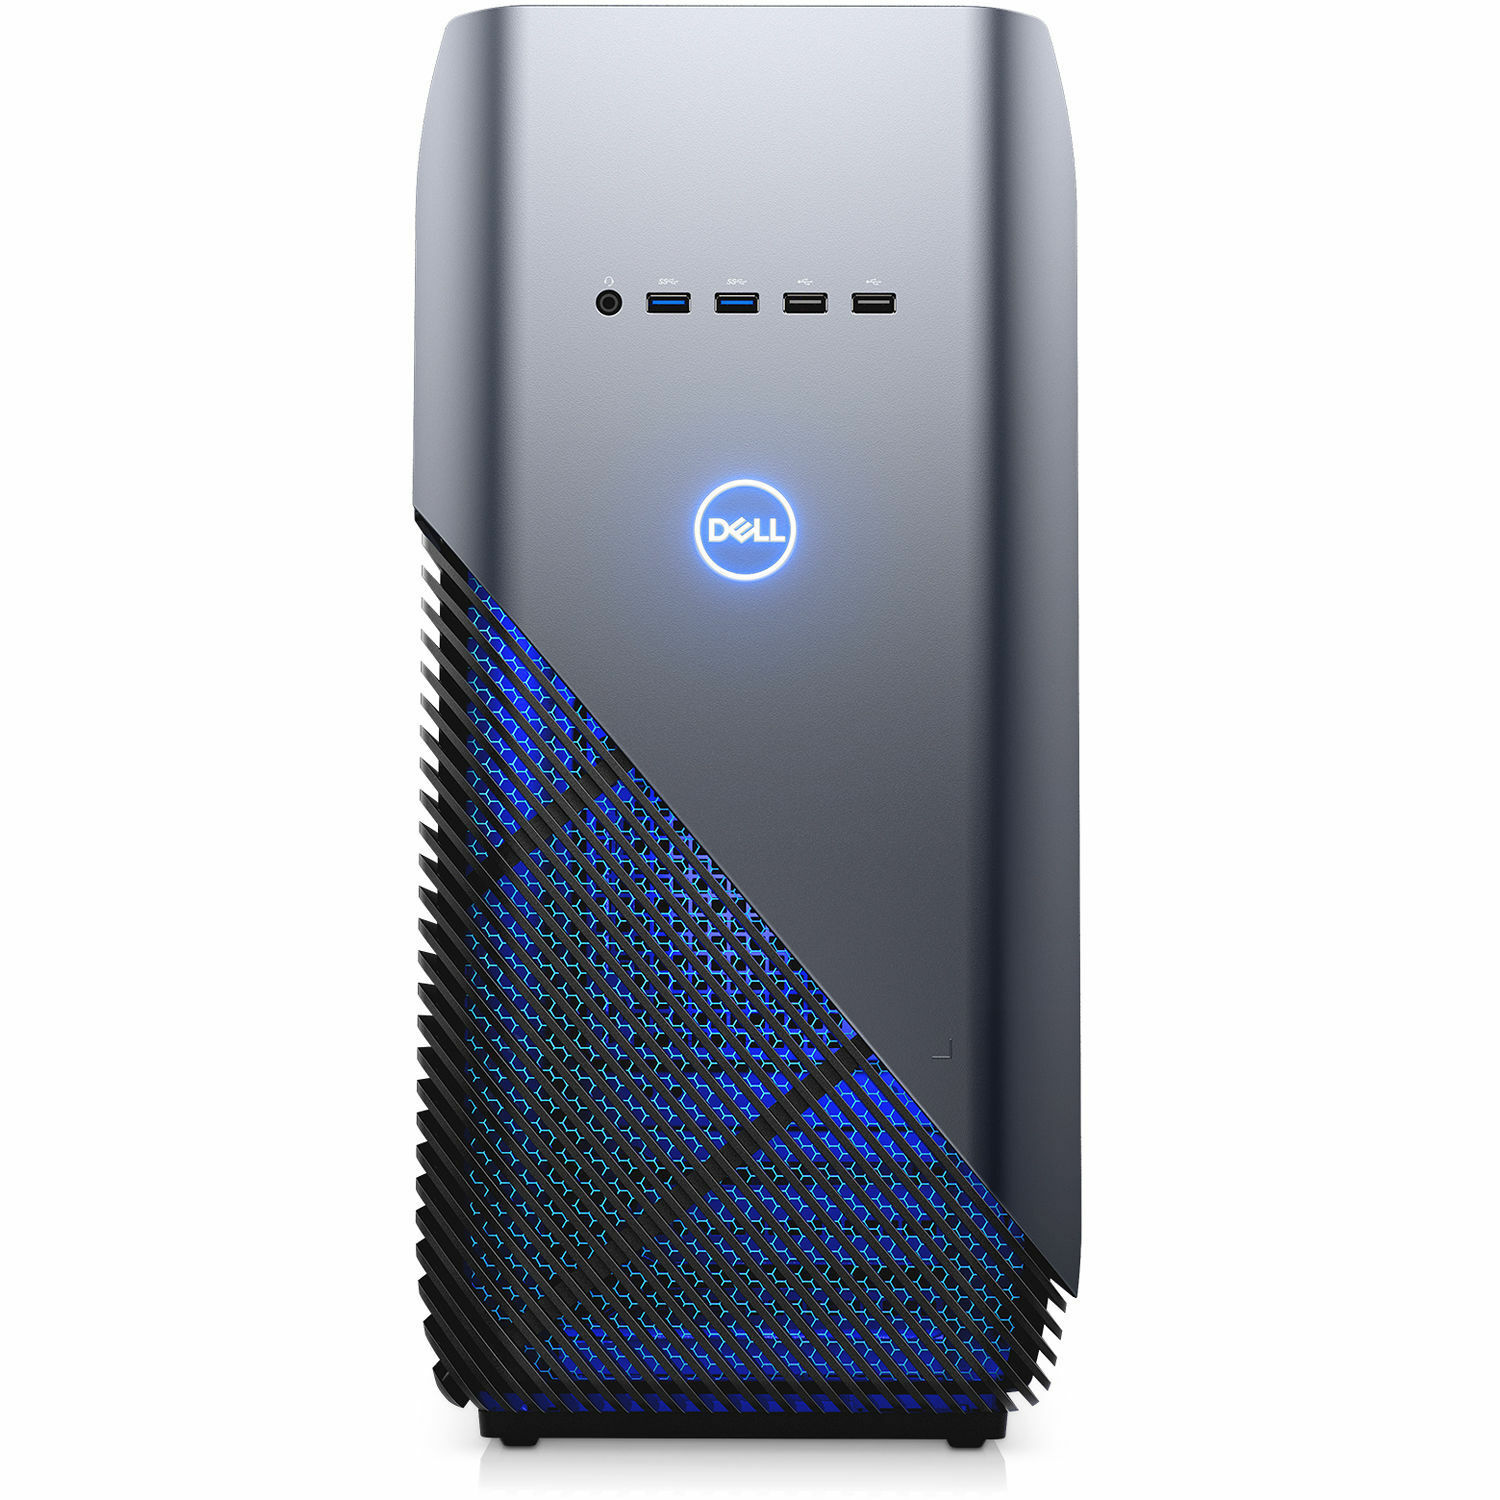 Utmost-Spic-And-Span-Dell Inspiron 5680 Core i7-8700 Nvidia GeForce GTX 1080 8GB Gaming Tower Desktop